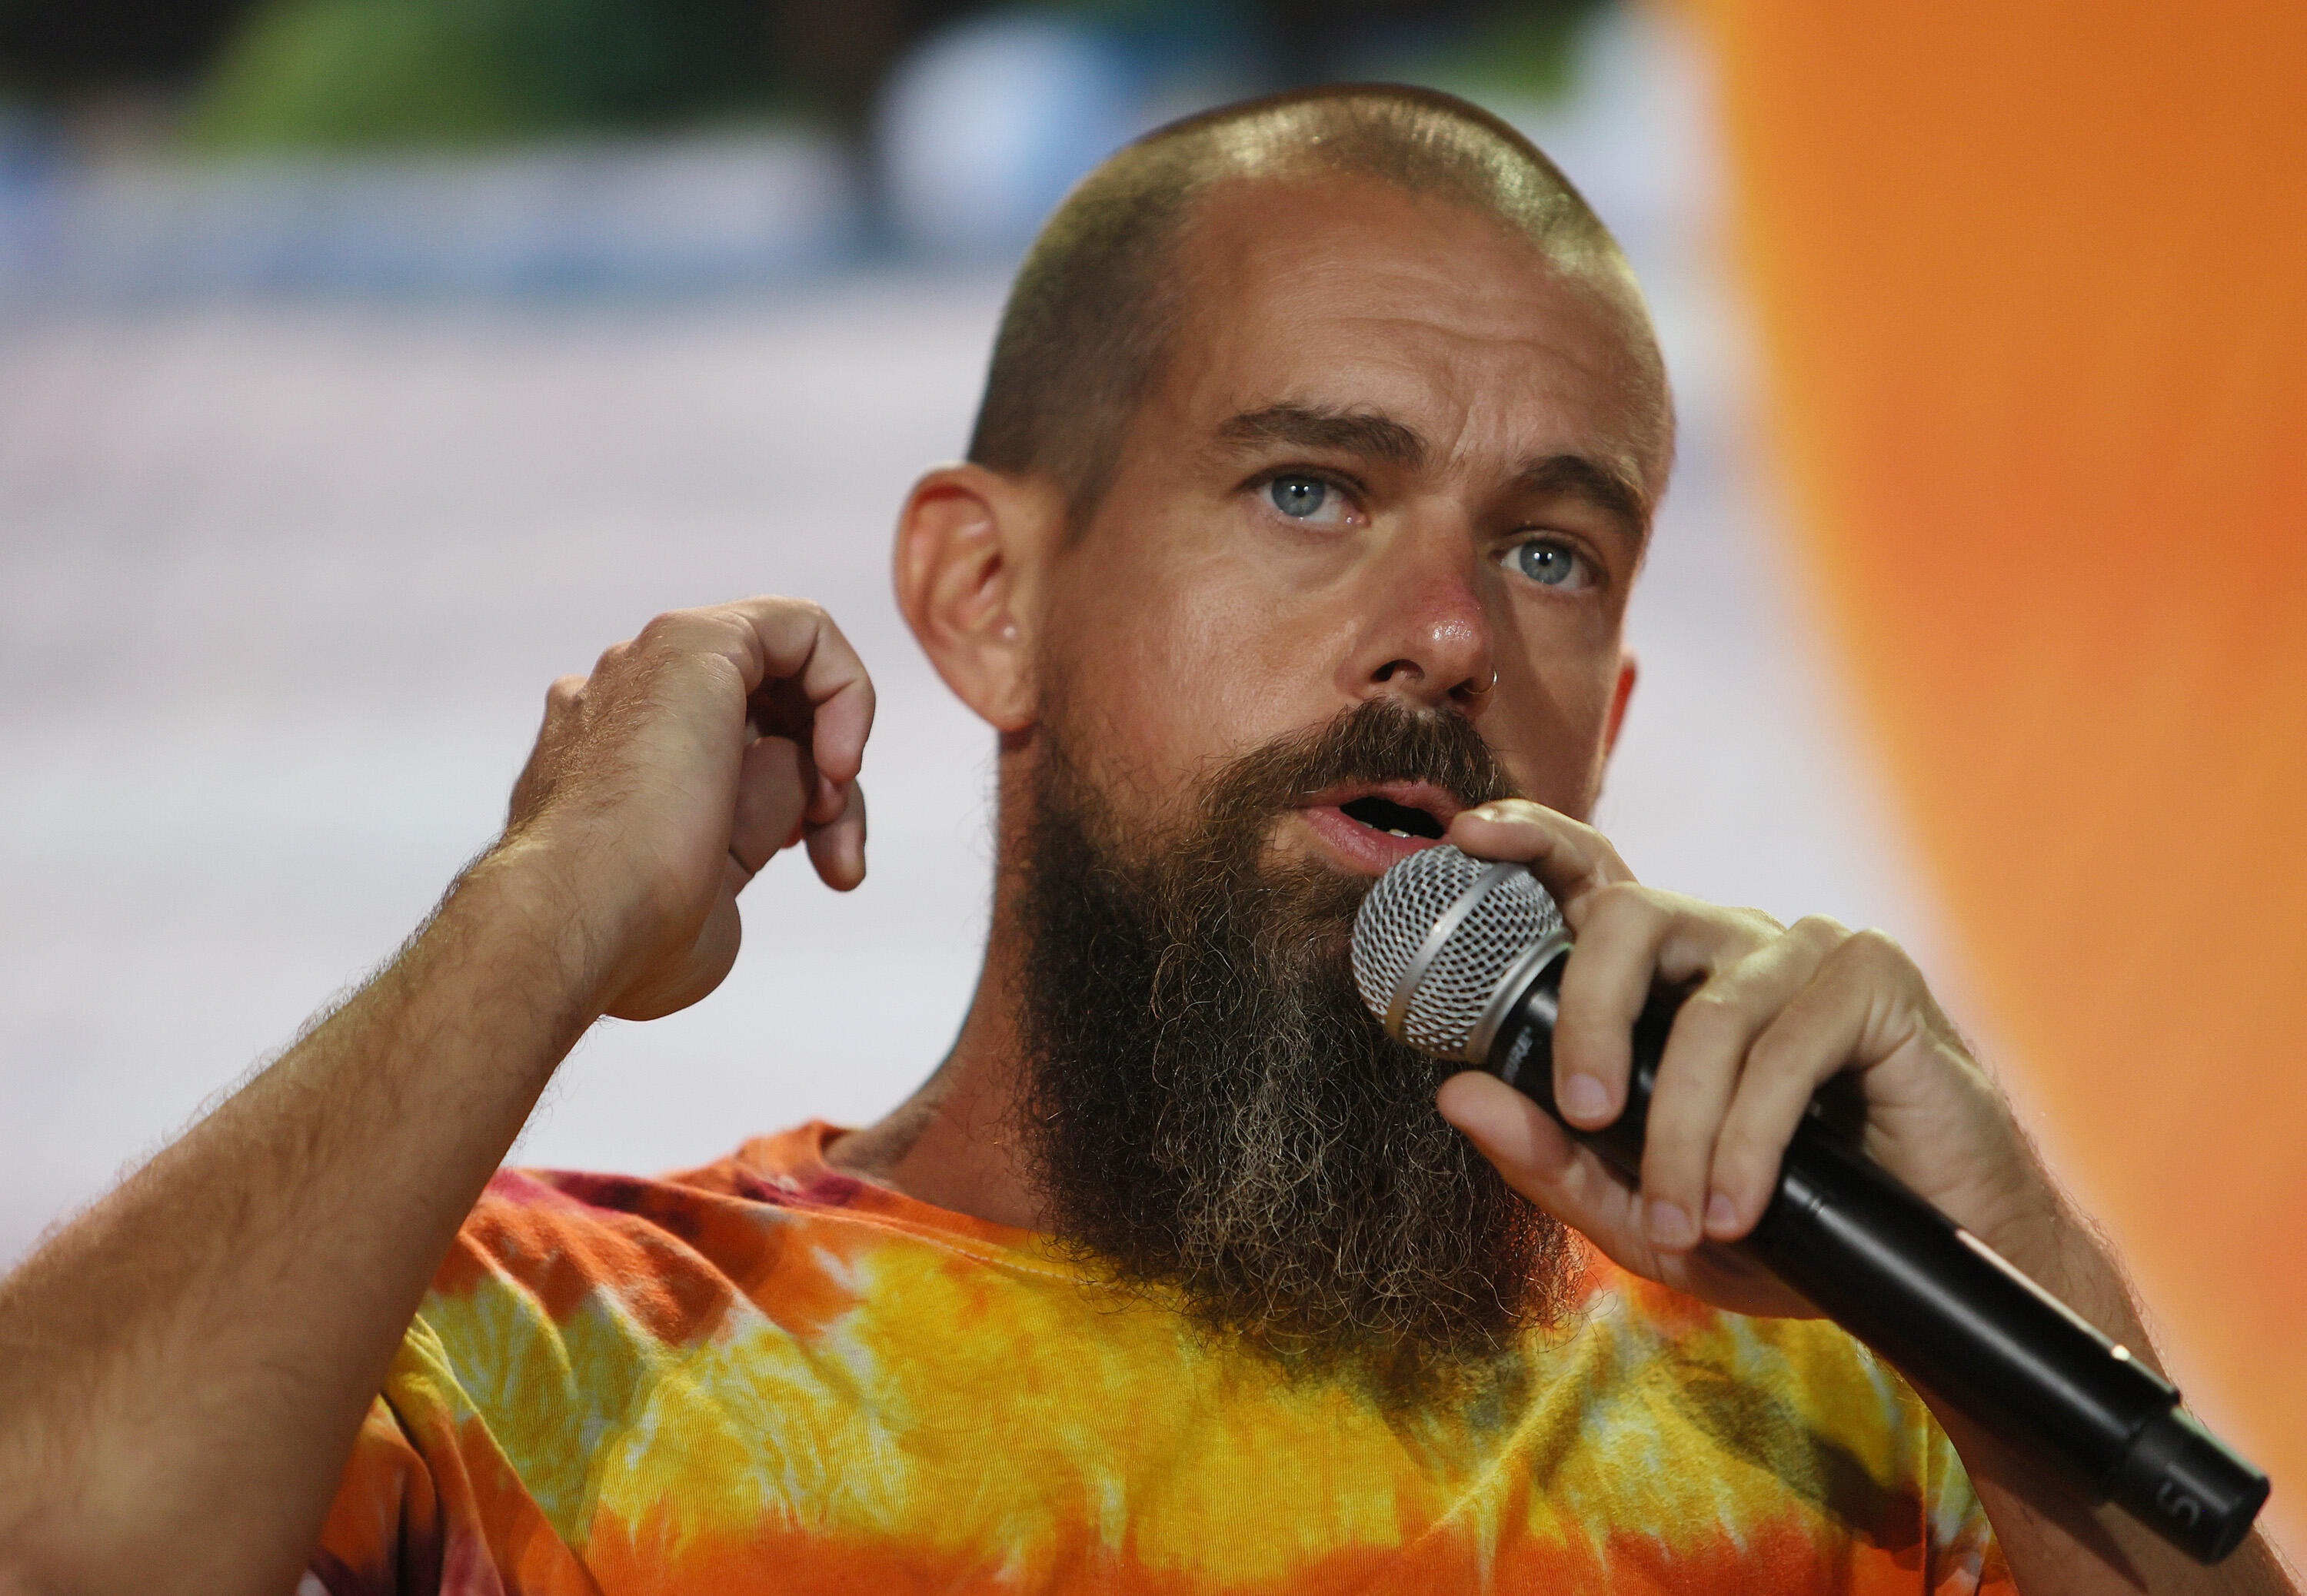 <p>Jack Dorsey, CEO of Twitter and Square, speaks on stage at the Bitcoin 2021 Convention on June 04, 2021 in Miami, Florida.&nbsp;</p>